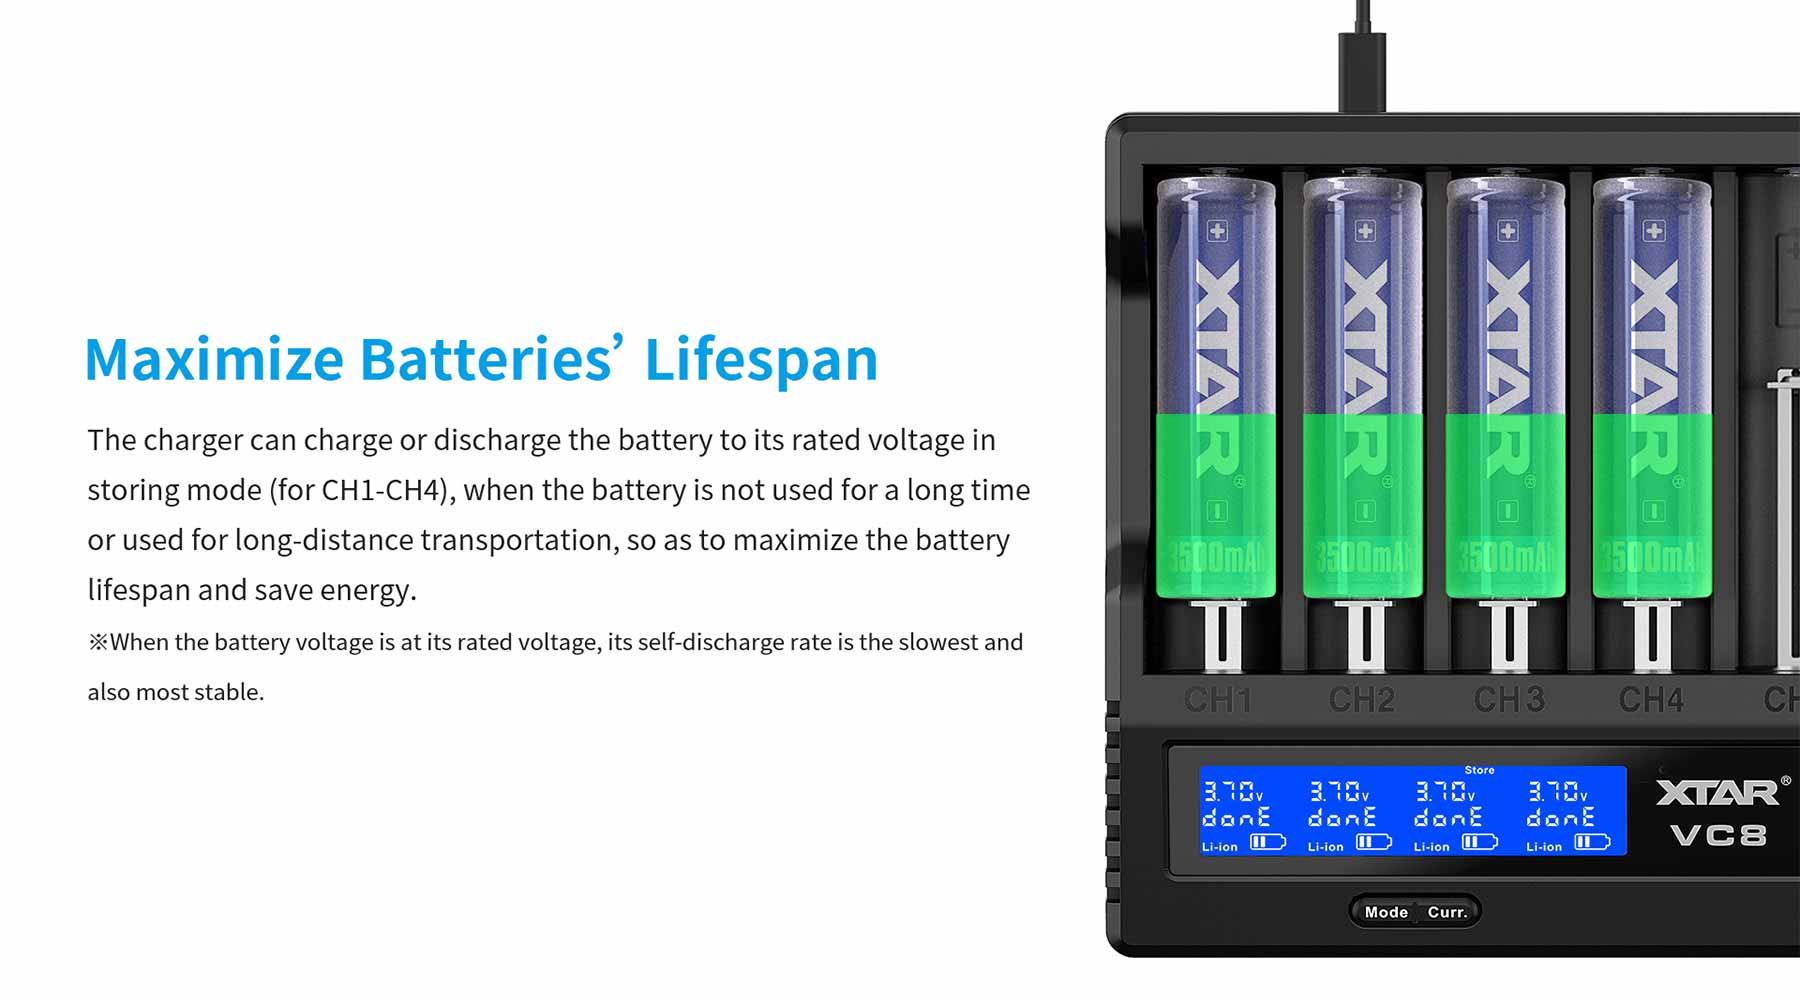 The XTAR VC8 is a great charger. All the battery types fit in the slots very well, even a 75mm long 21700 cell.